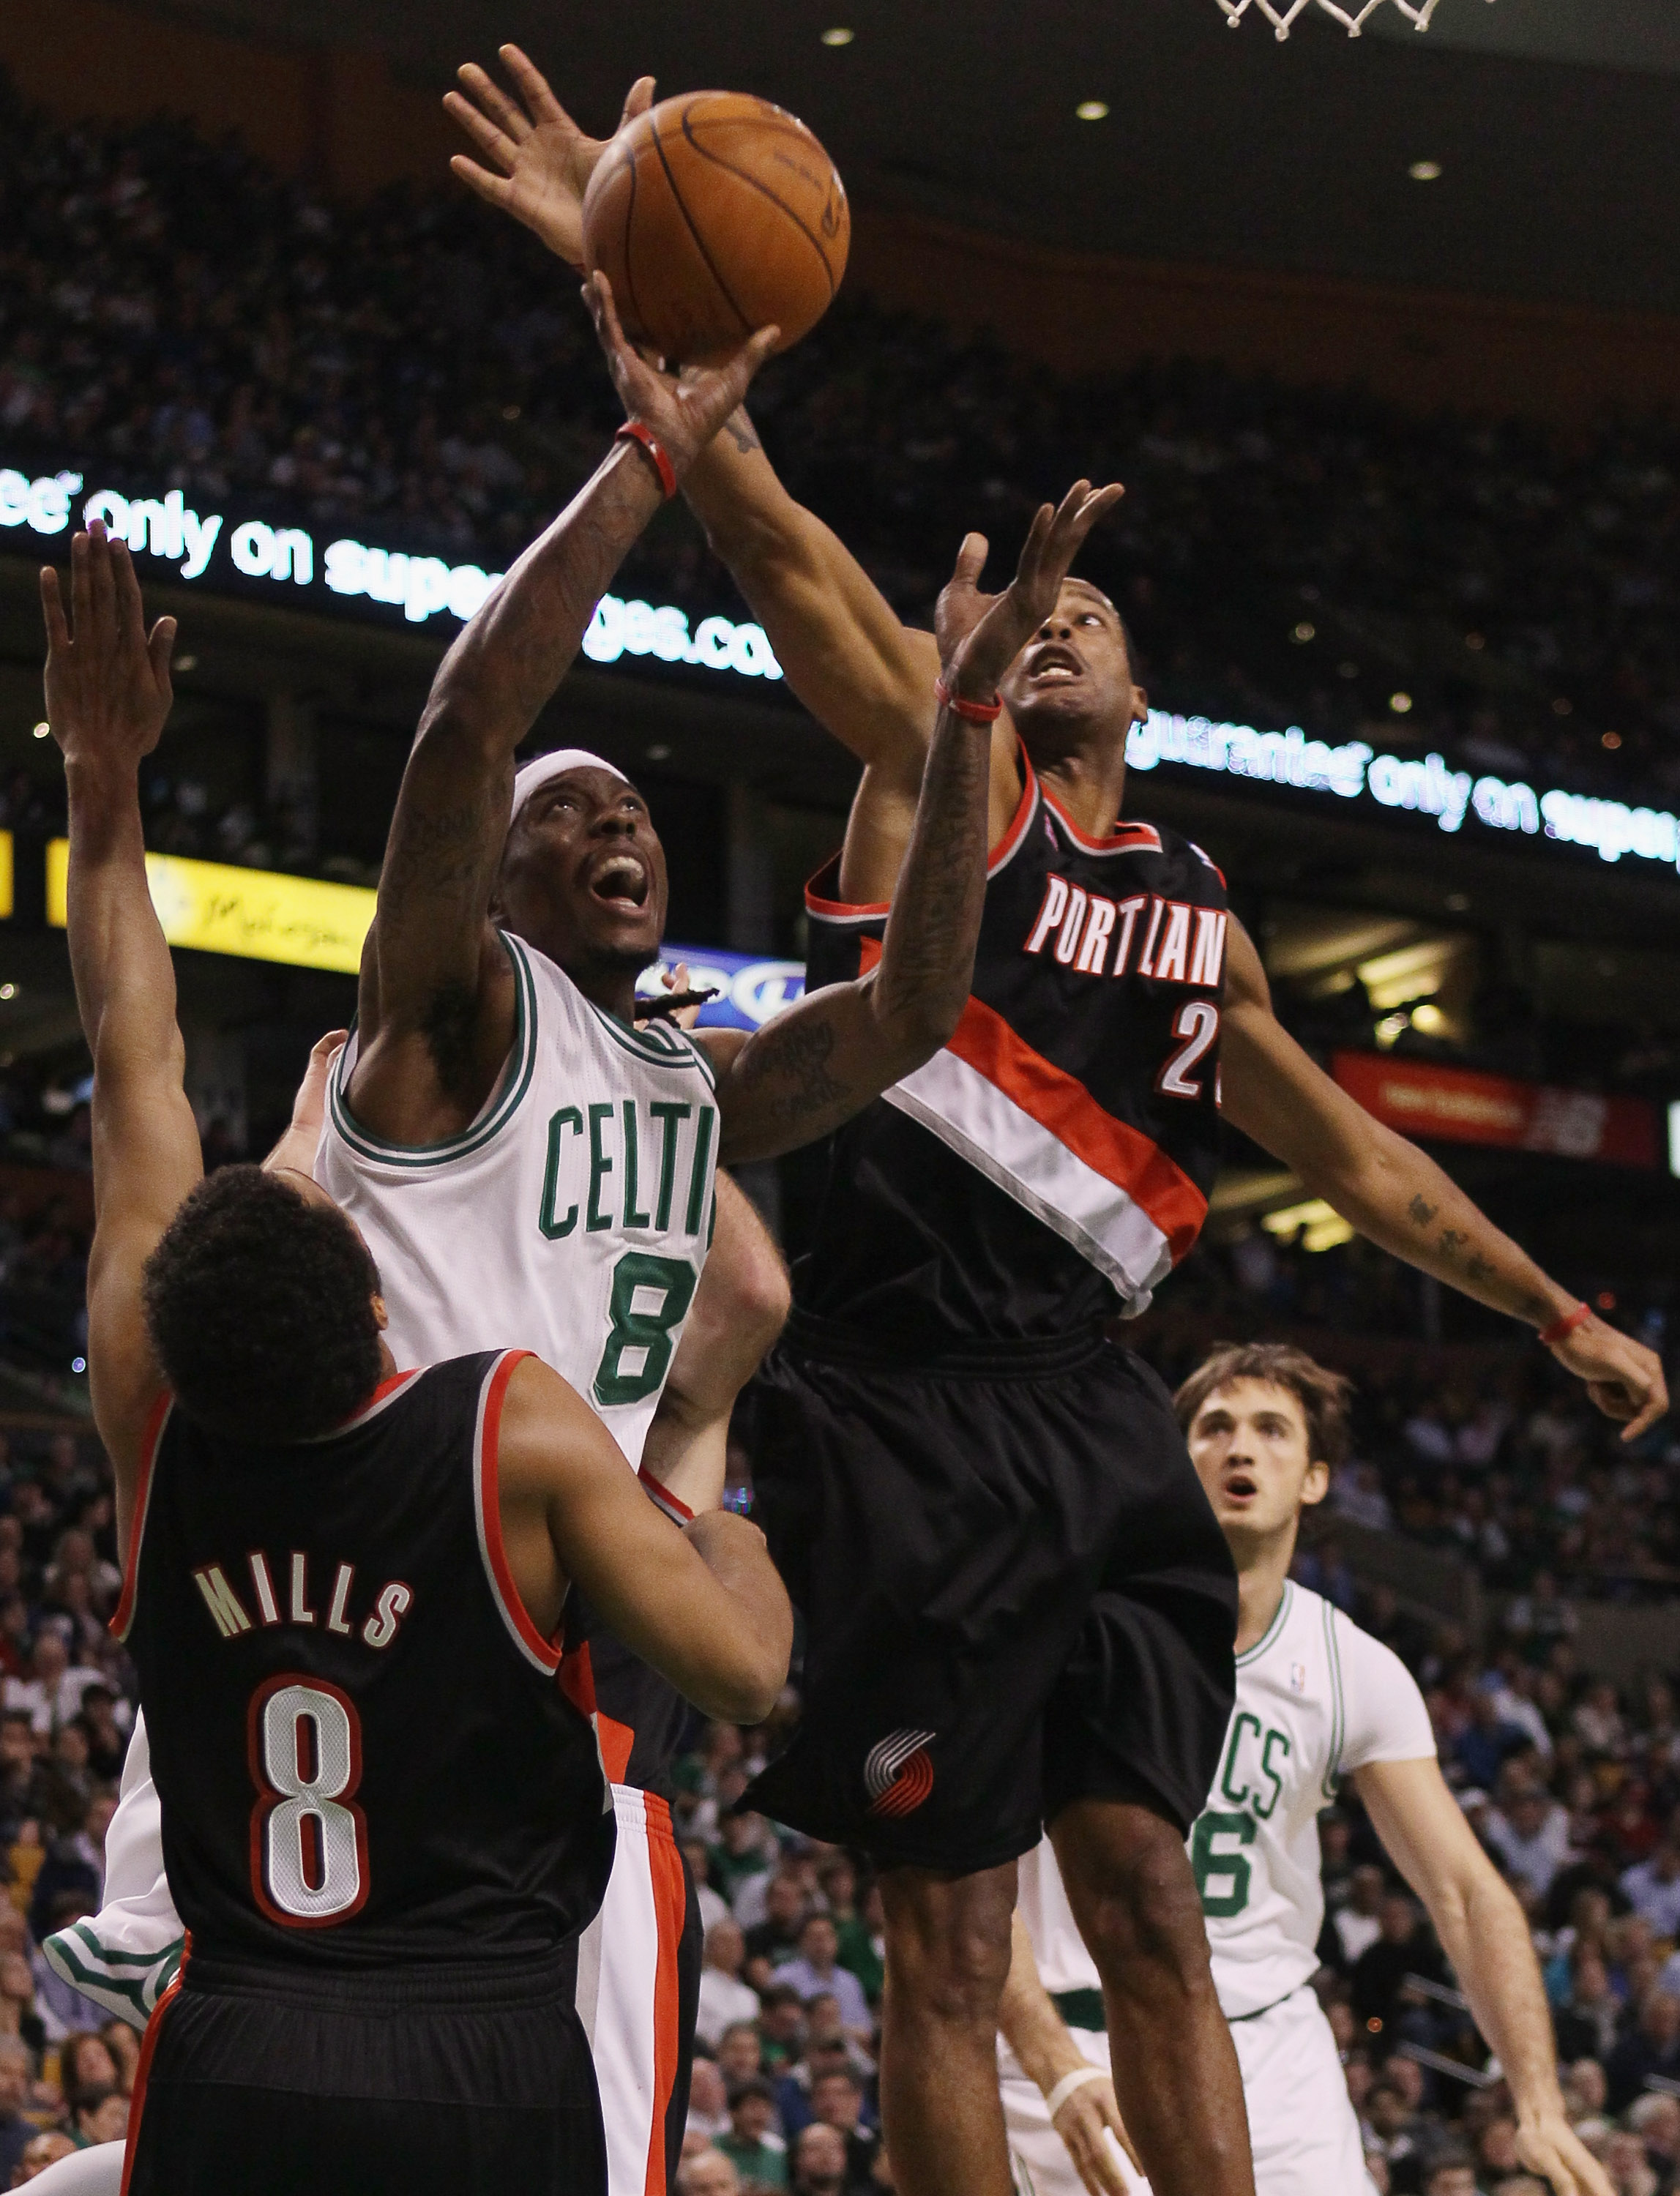 BOSTON - DECEMBER 01:  Marquis Daniels #8 of the Boston Celtics tries to take a shot as Marcus Camby #23 and Patrick Mills #8 of the Portland Trailblazers defend on December 1, 2010 at the TD Garden in Boston, Massachusetts.  NOTE TO USER: User expressly